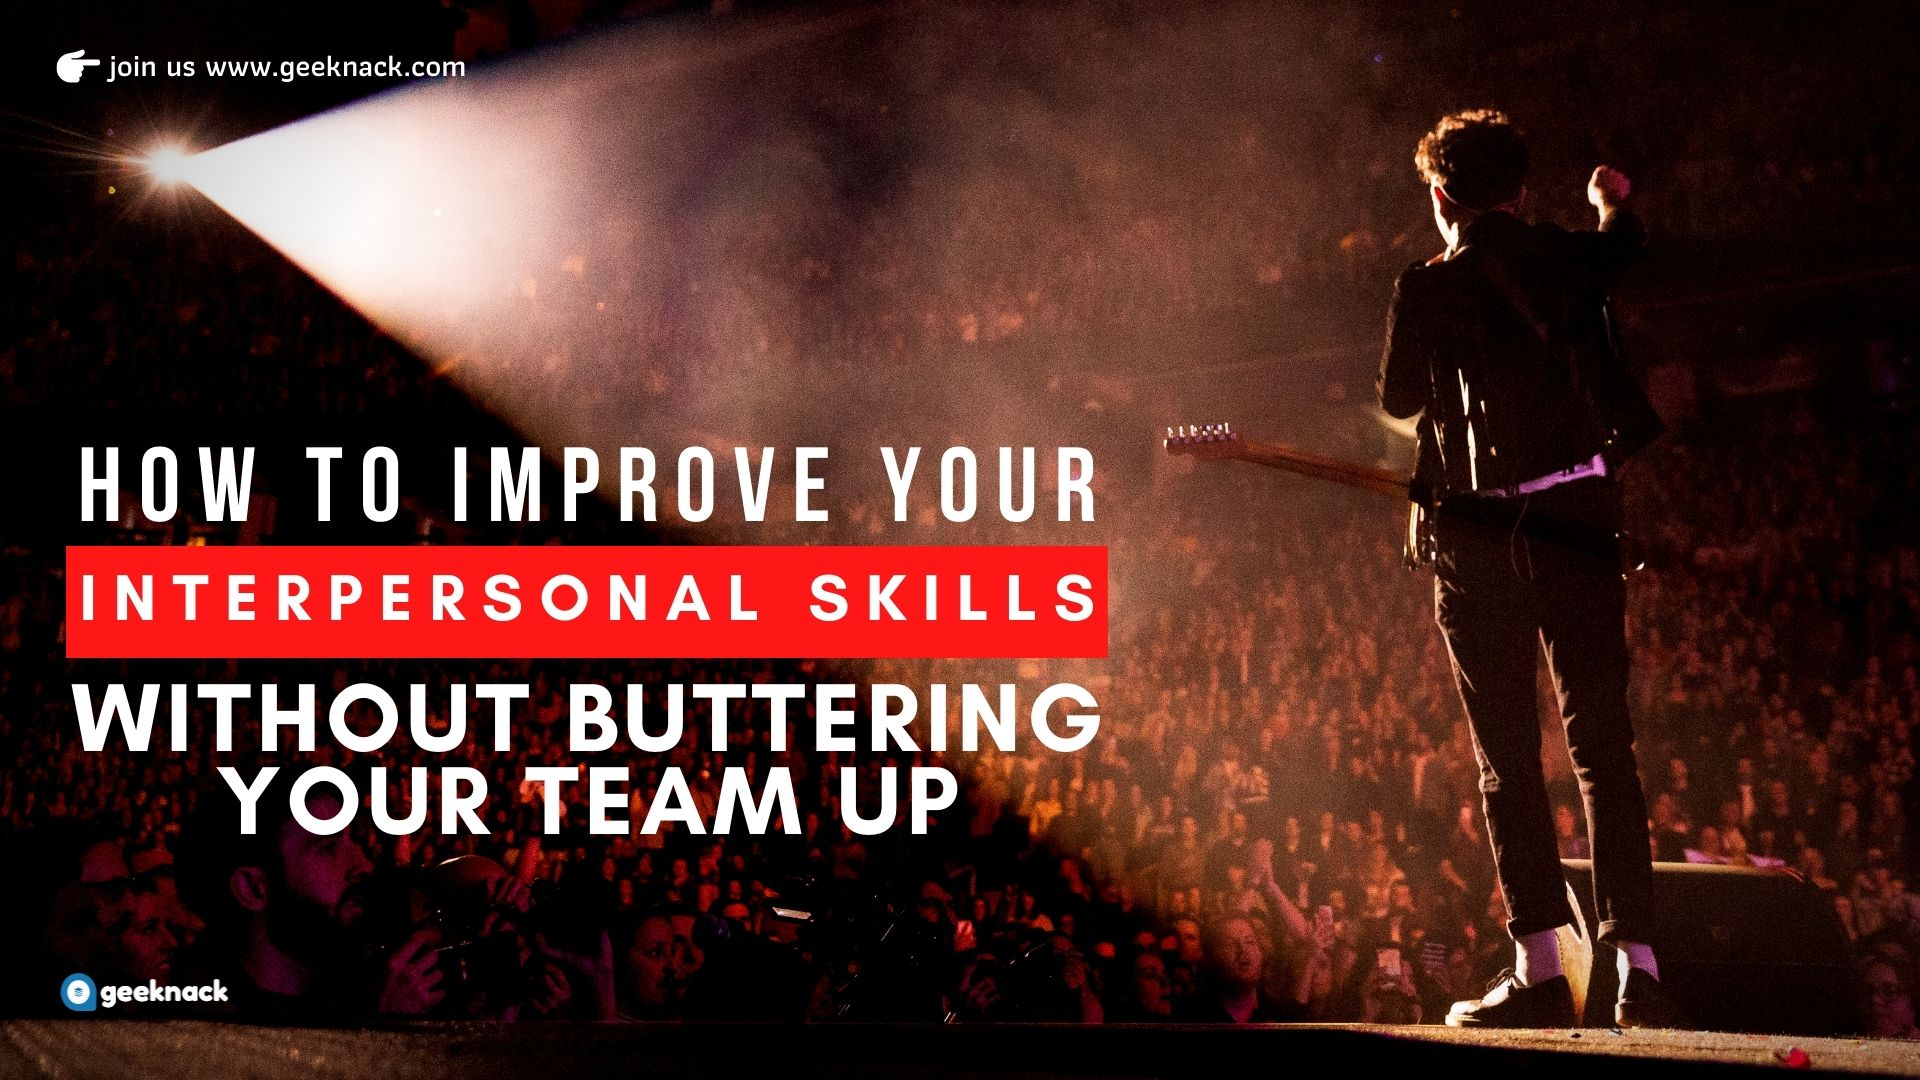 How to Improve Your Interpersonal Skills Without Buttering Your Team Up